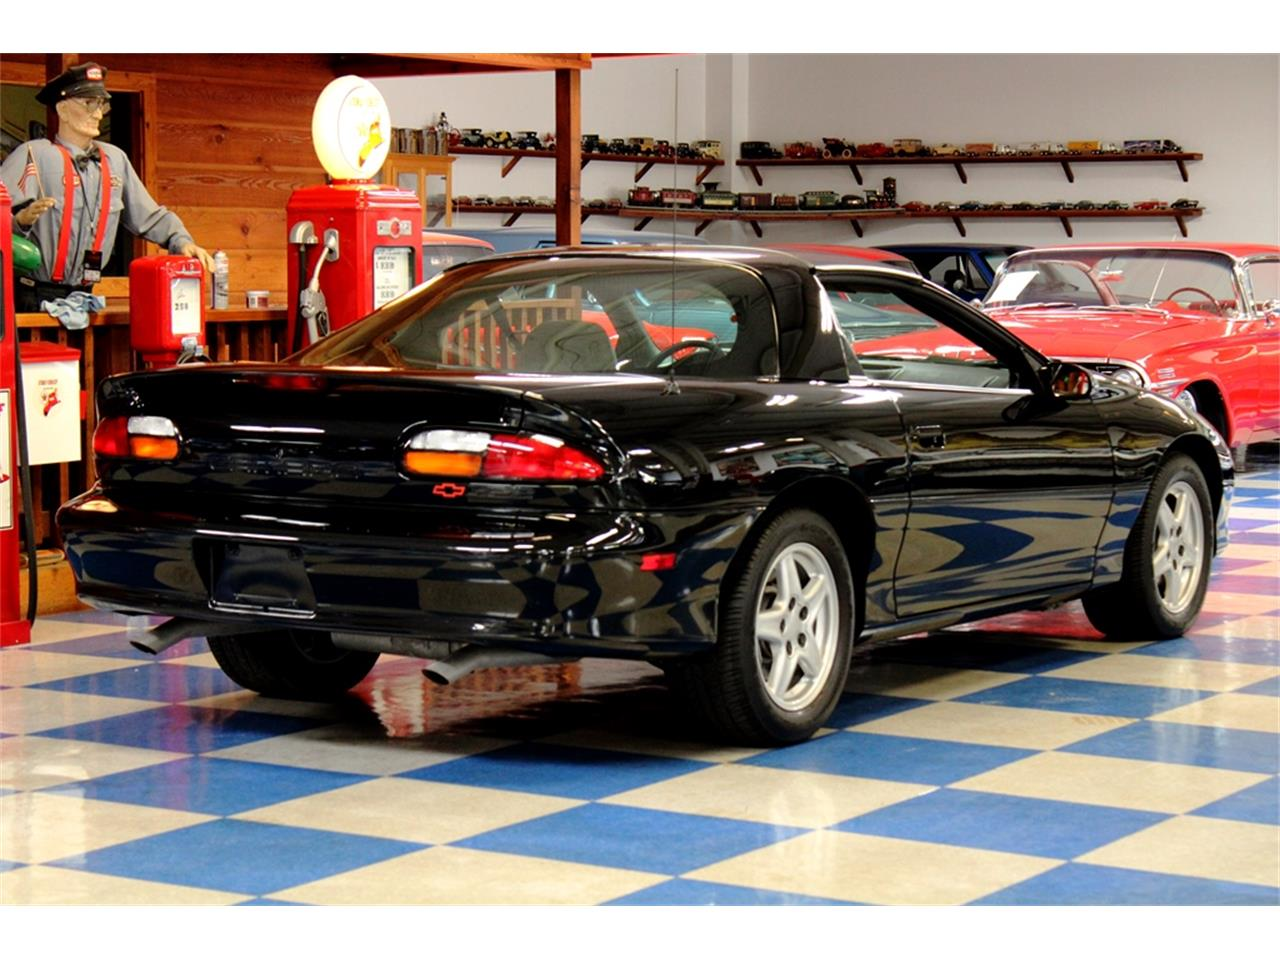 Large Picture of 1997 Chevrolet Camaro located in New Braunfels Texas - $14,900.00 - QQJ5